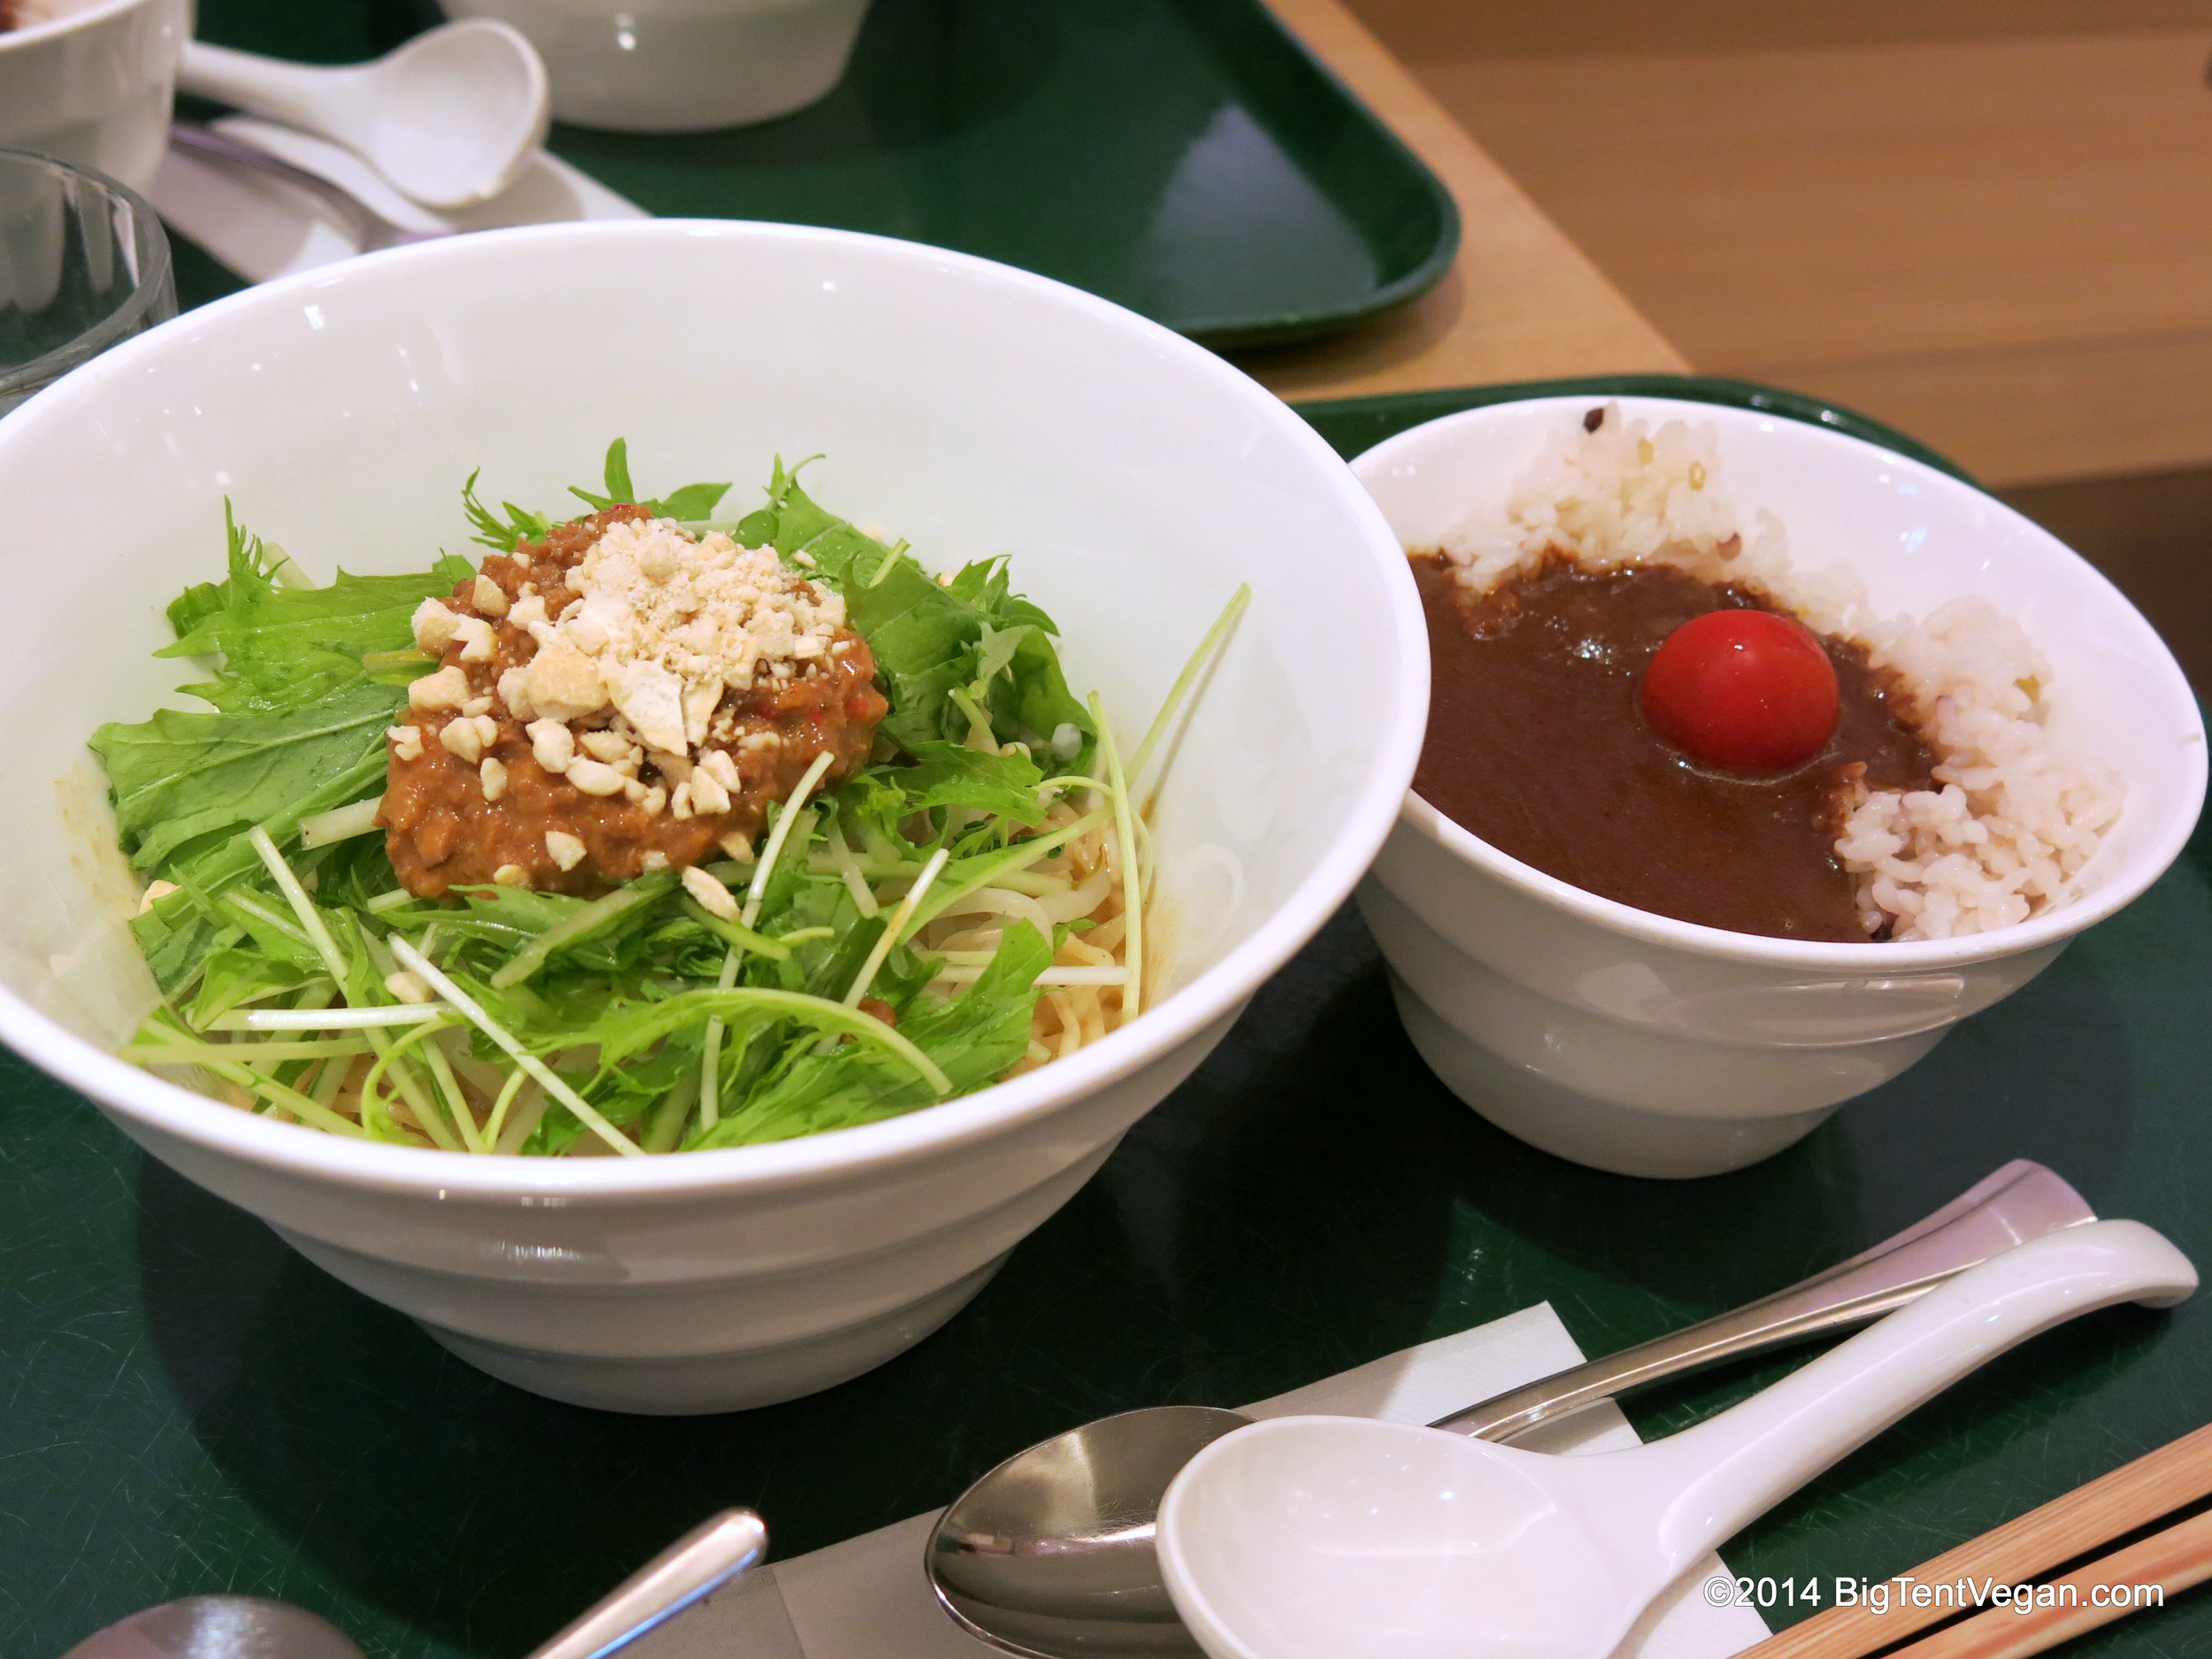 T's Hiyashi Tantan Chilled Noodle Bowl with a side of Smile Curry at T's Tantan inside Tokyo Station